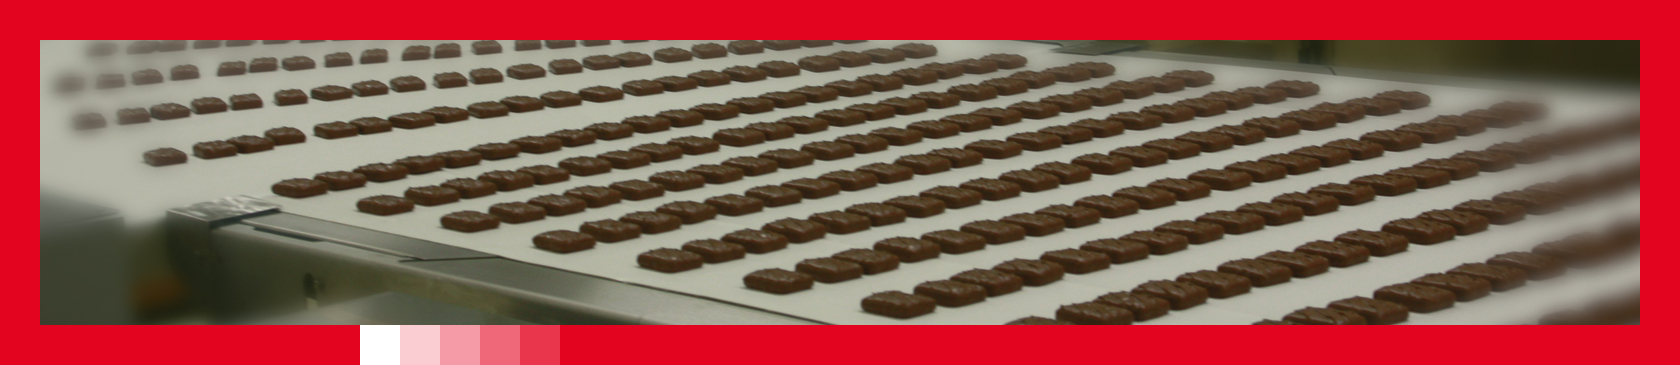 Chocolate Packaging Systems